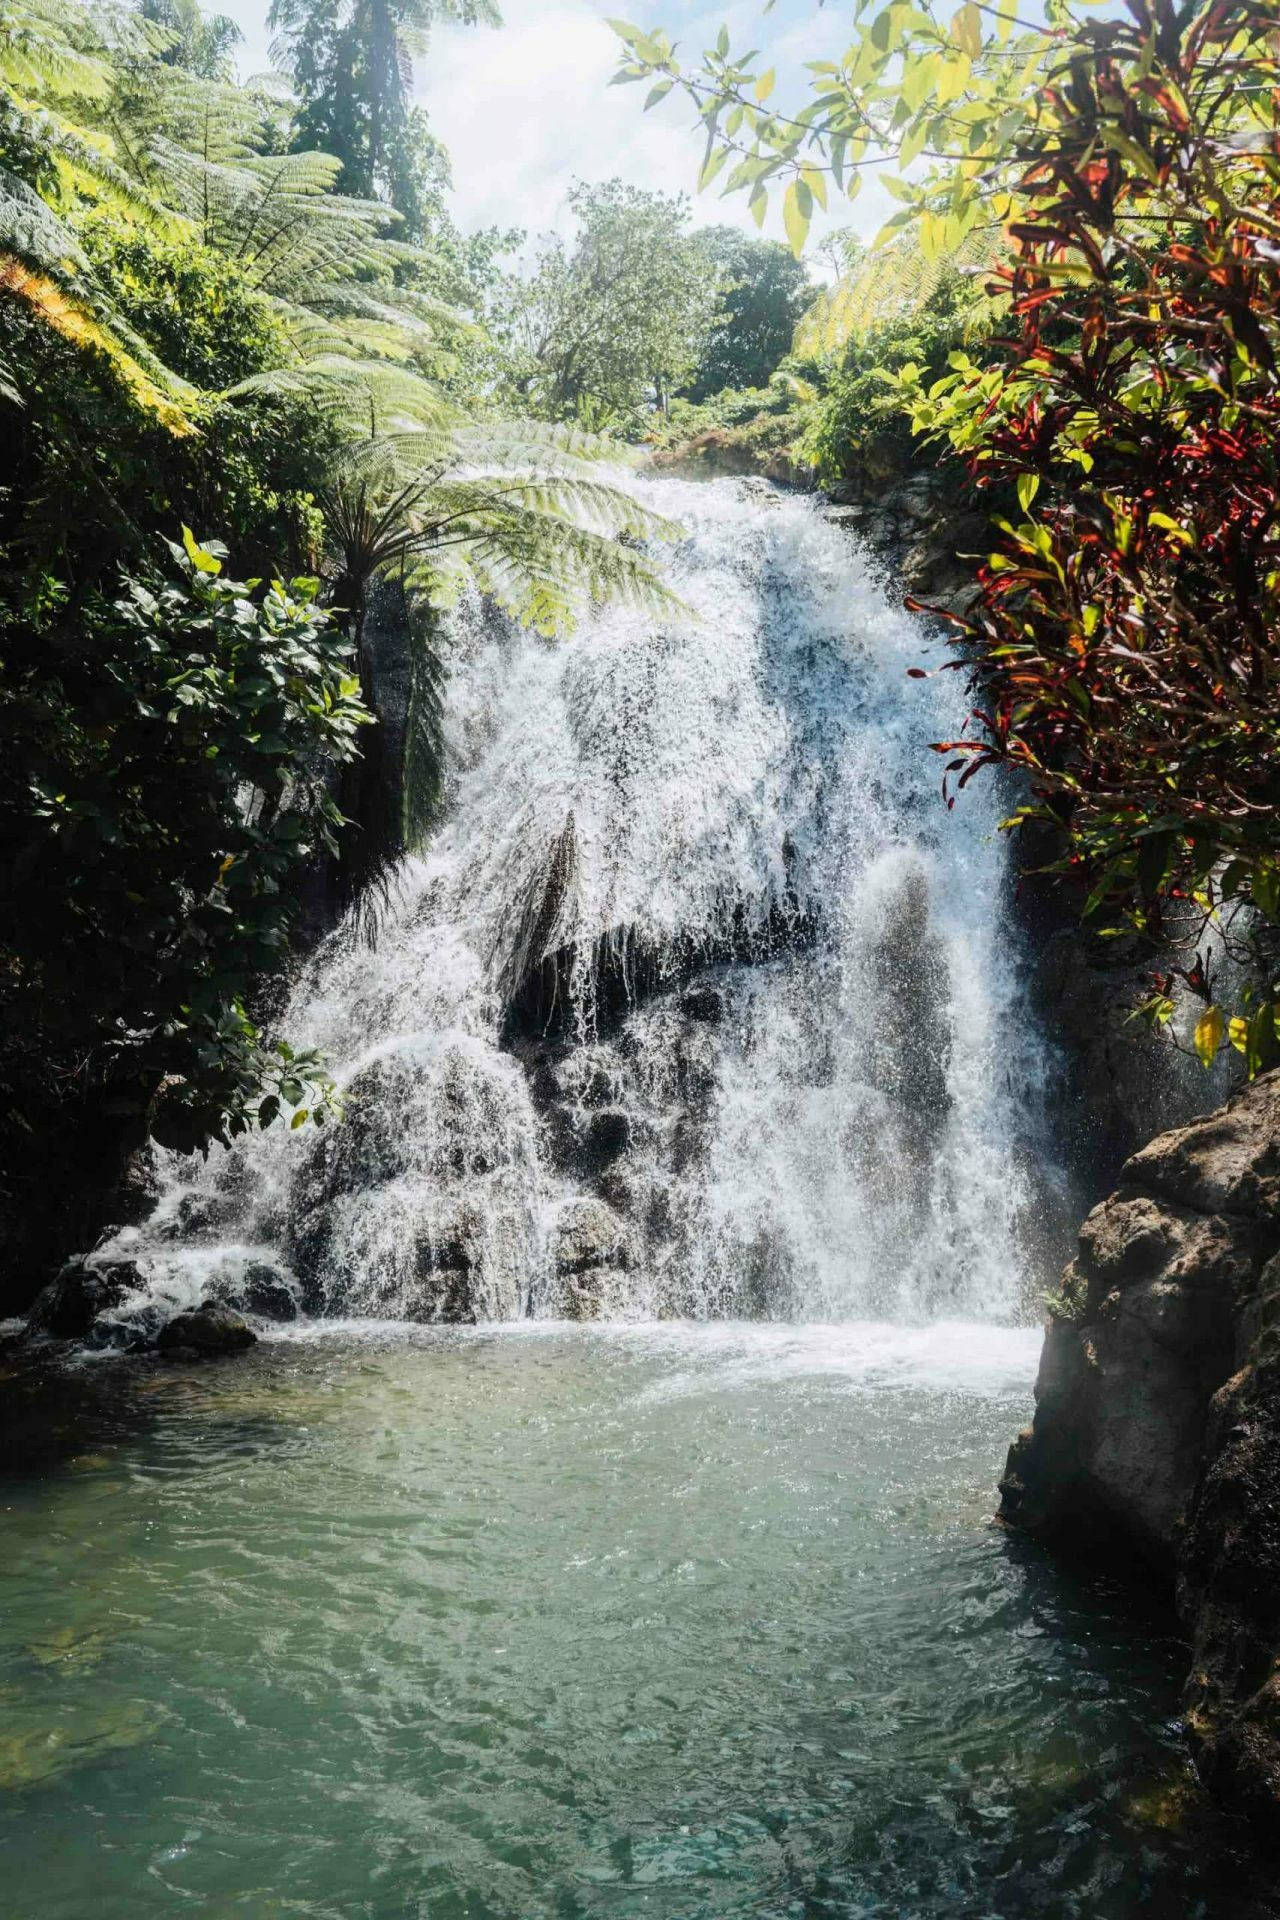 An Insider's Guide to Maewo, Vanuatu, photos by Ain Raadik and Ben Savage, Talise village, sparkling waterfalls, jungle